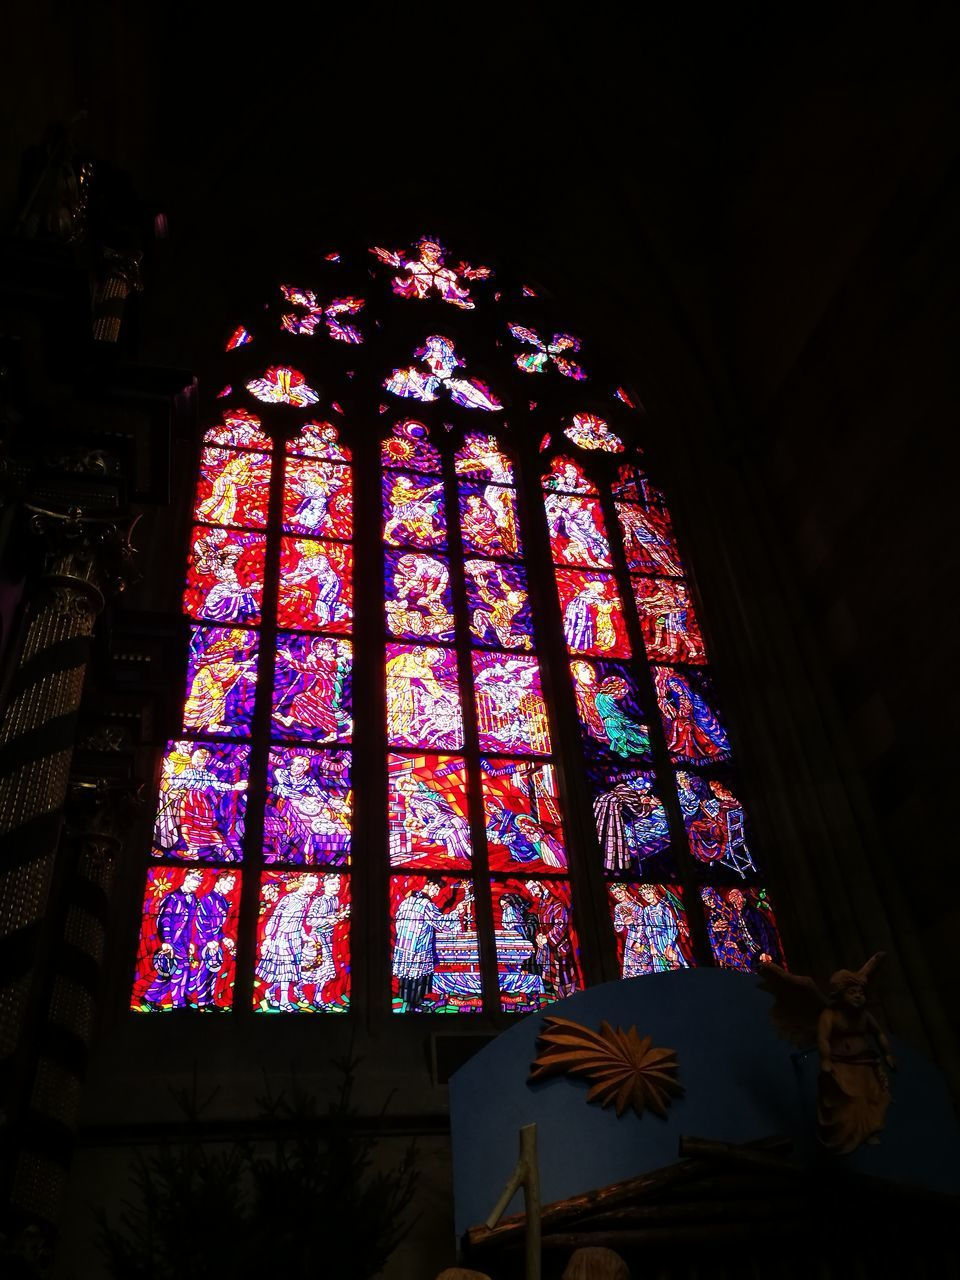 stained glass, place of worship, religion, window, spirituality, indoors, low angle view, architecture, multi colored, built structure, no people, cross, day